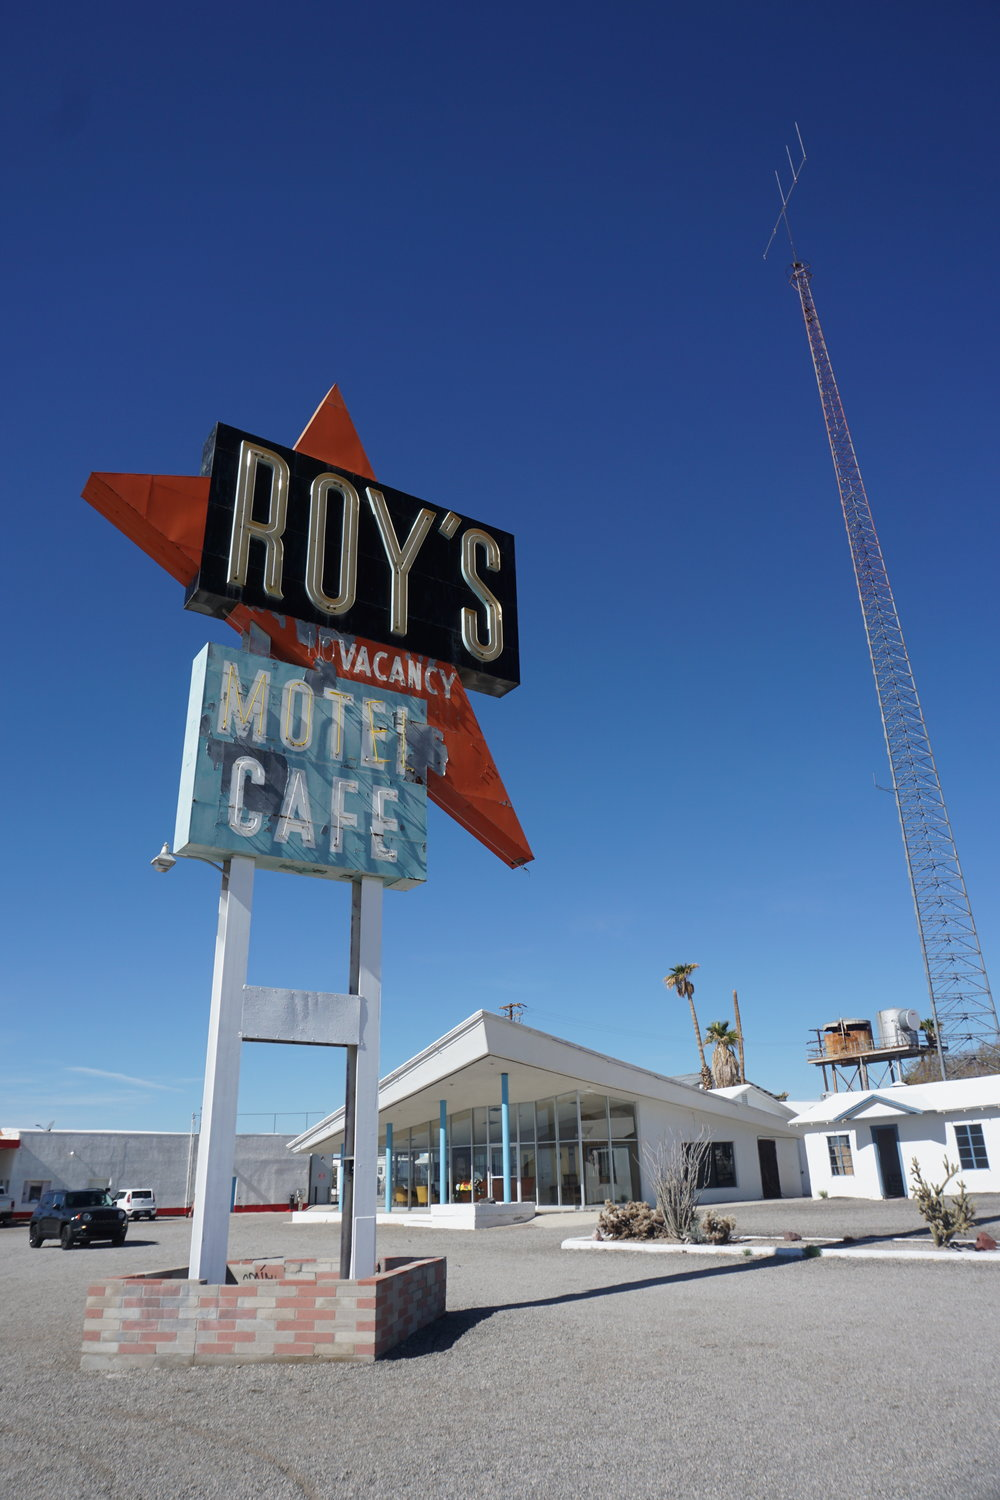 Roy's Motel is an iconic old Route 66 destination that is no longer operational.